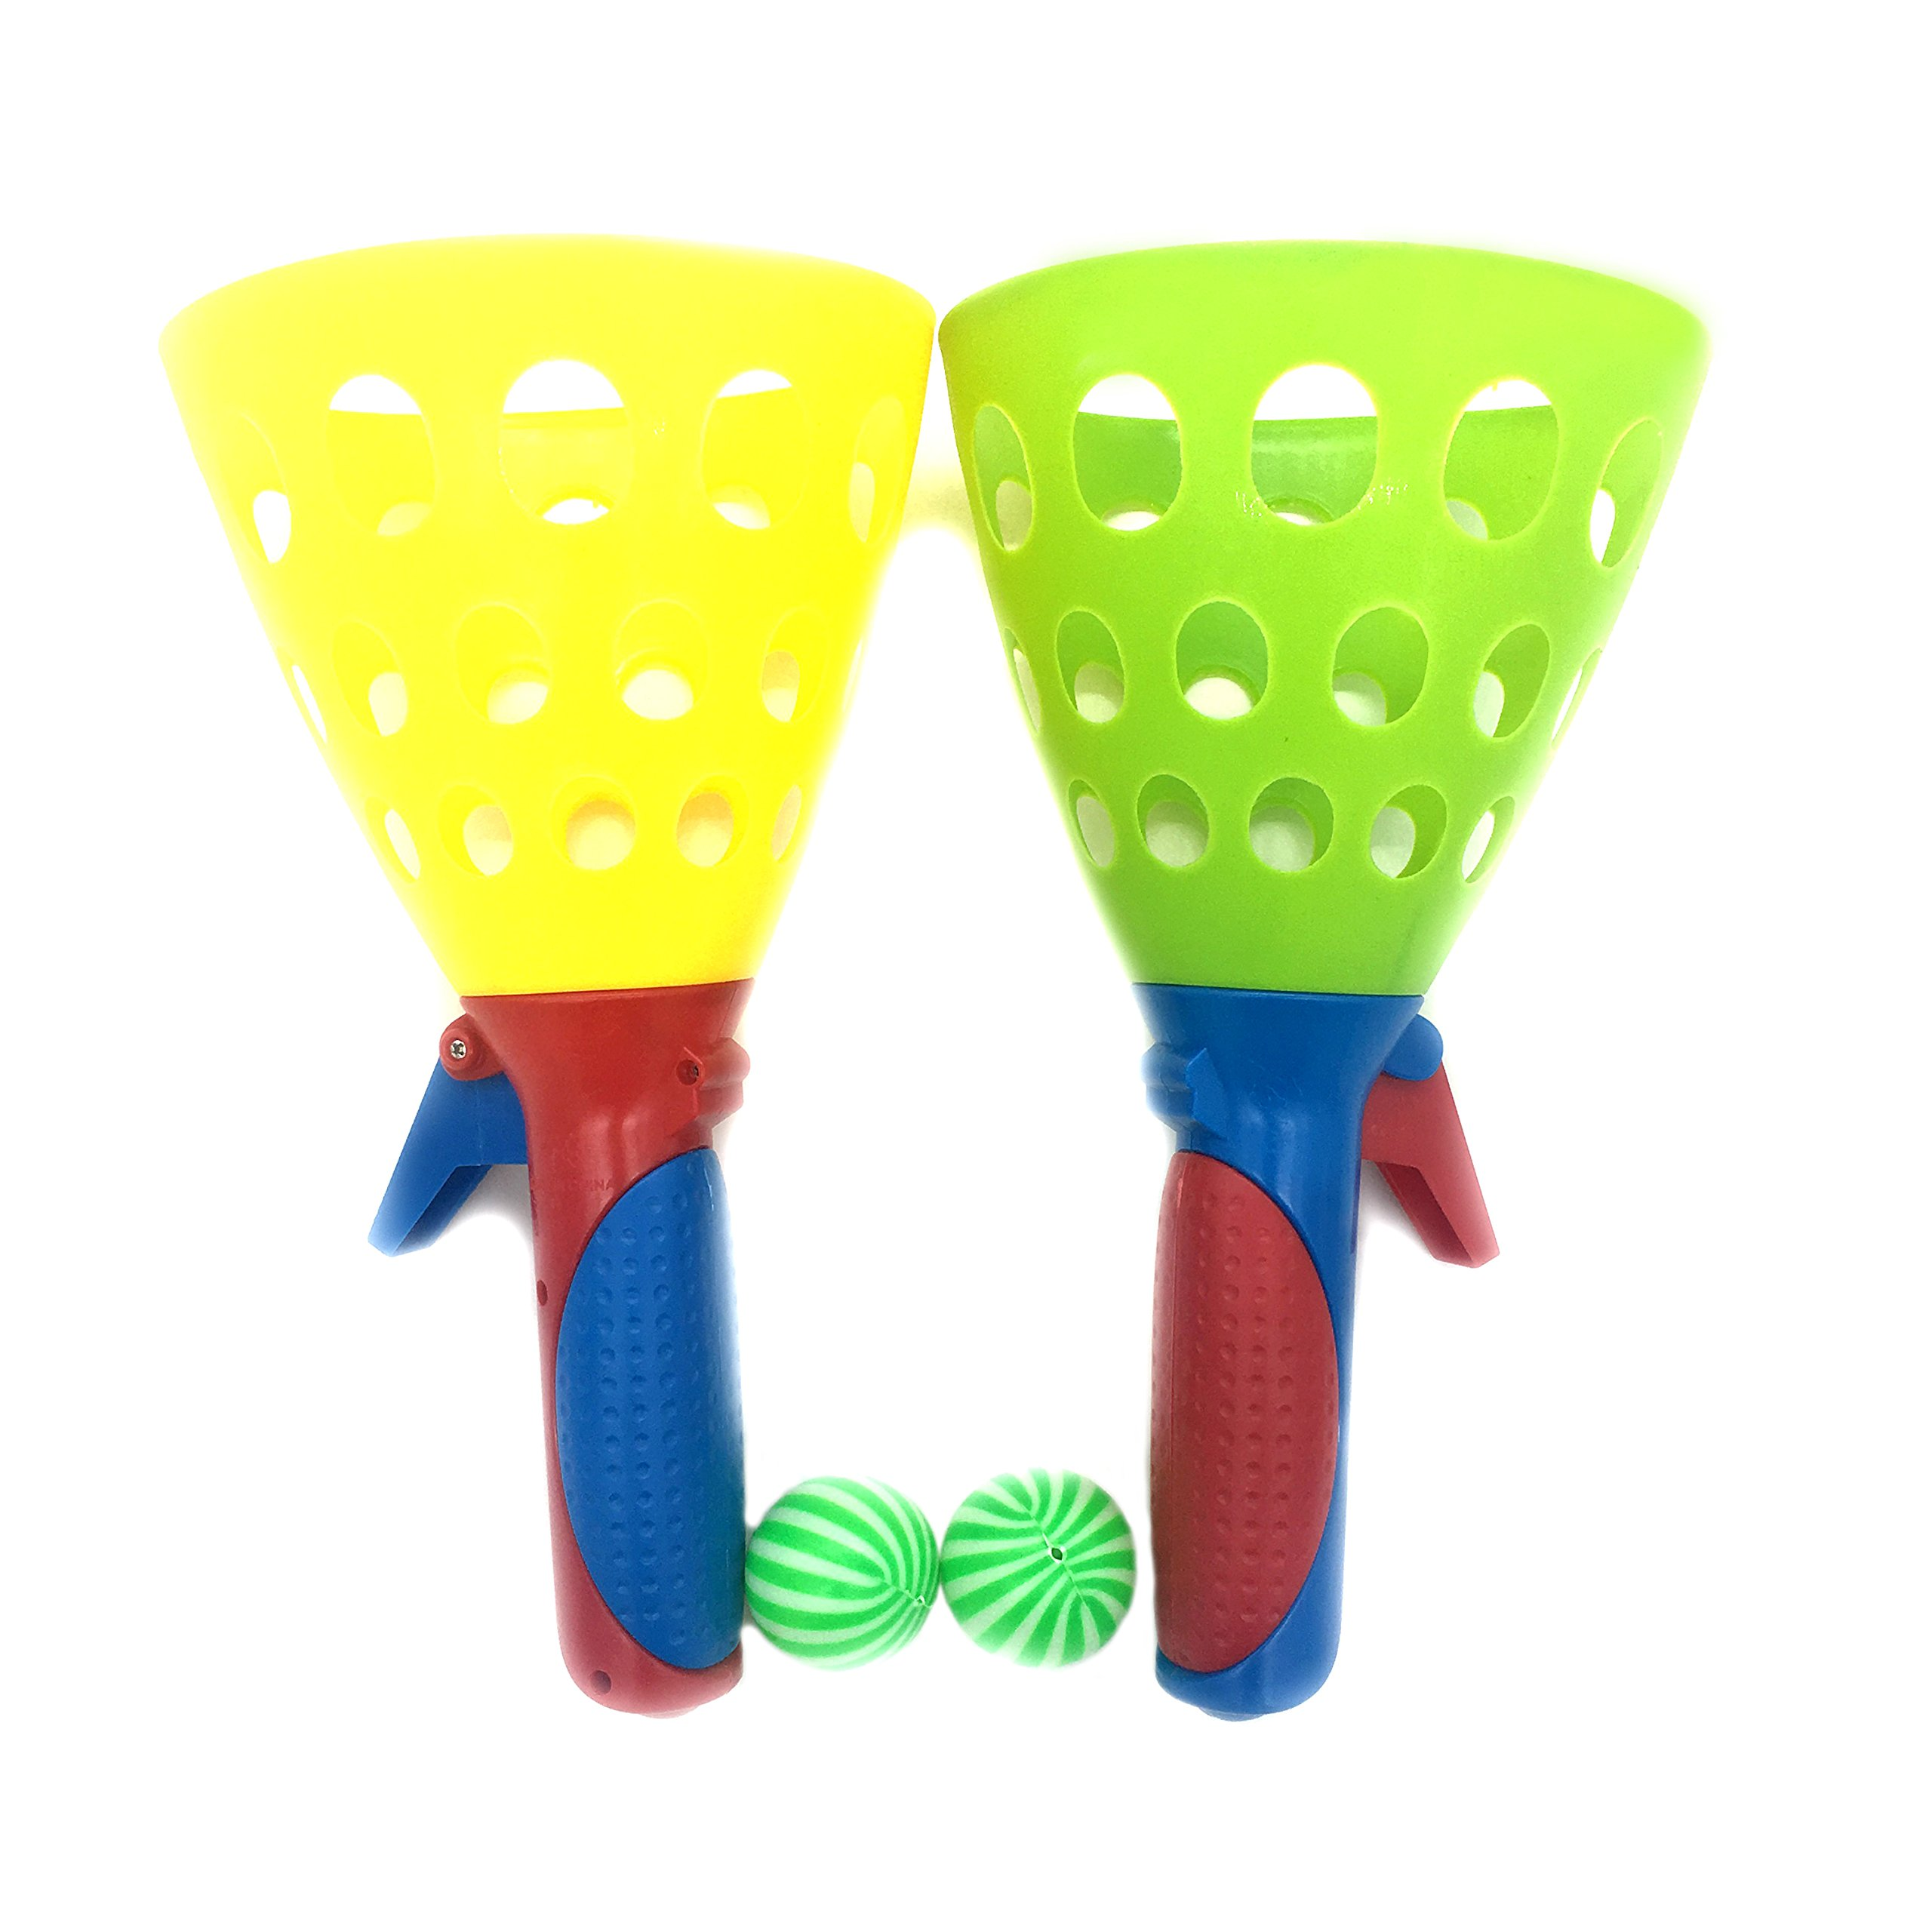 Silfrae Outdoor Launching Catching Ball Game Toy Set for Kids and Adults (Yellow/Green)